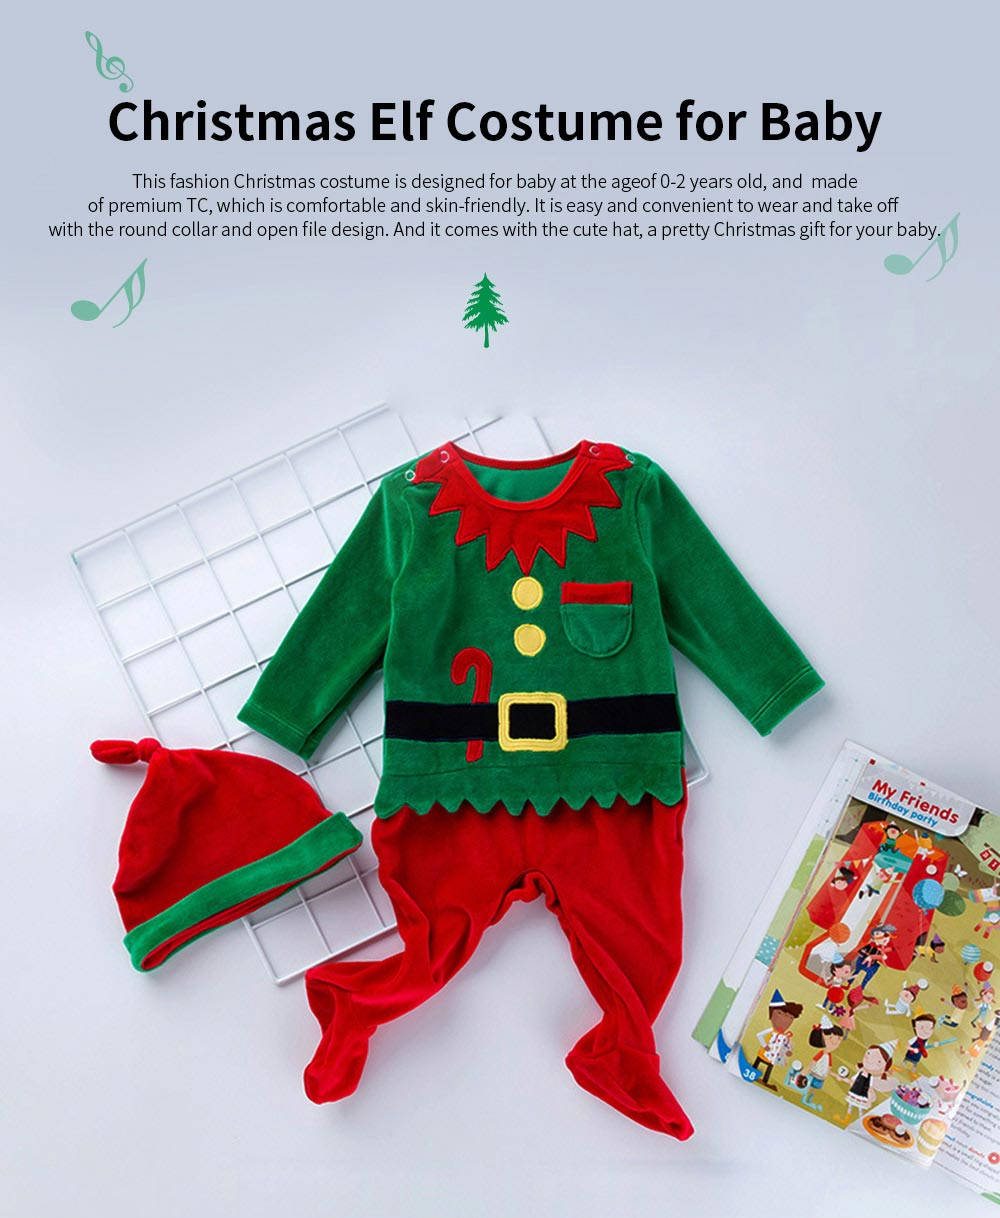 Christmas Elf Costume Green One-Piece Unisex Costume for 0-2 Baby with Long Sleeves and Cute Hat 2pcs 0